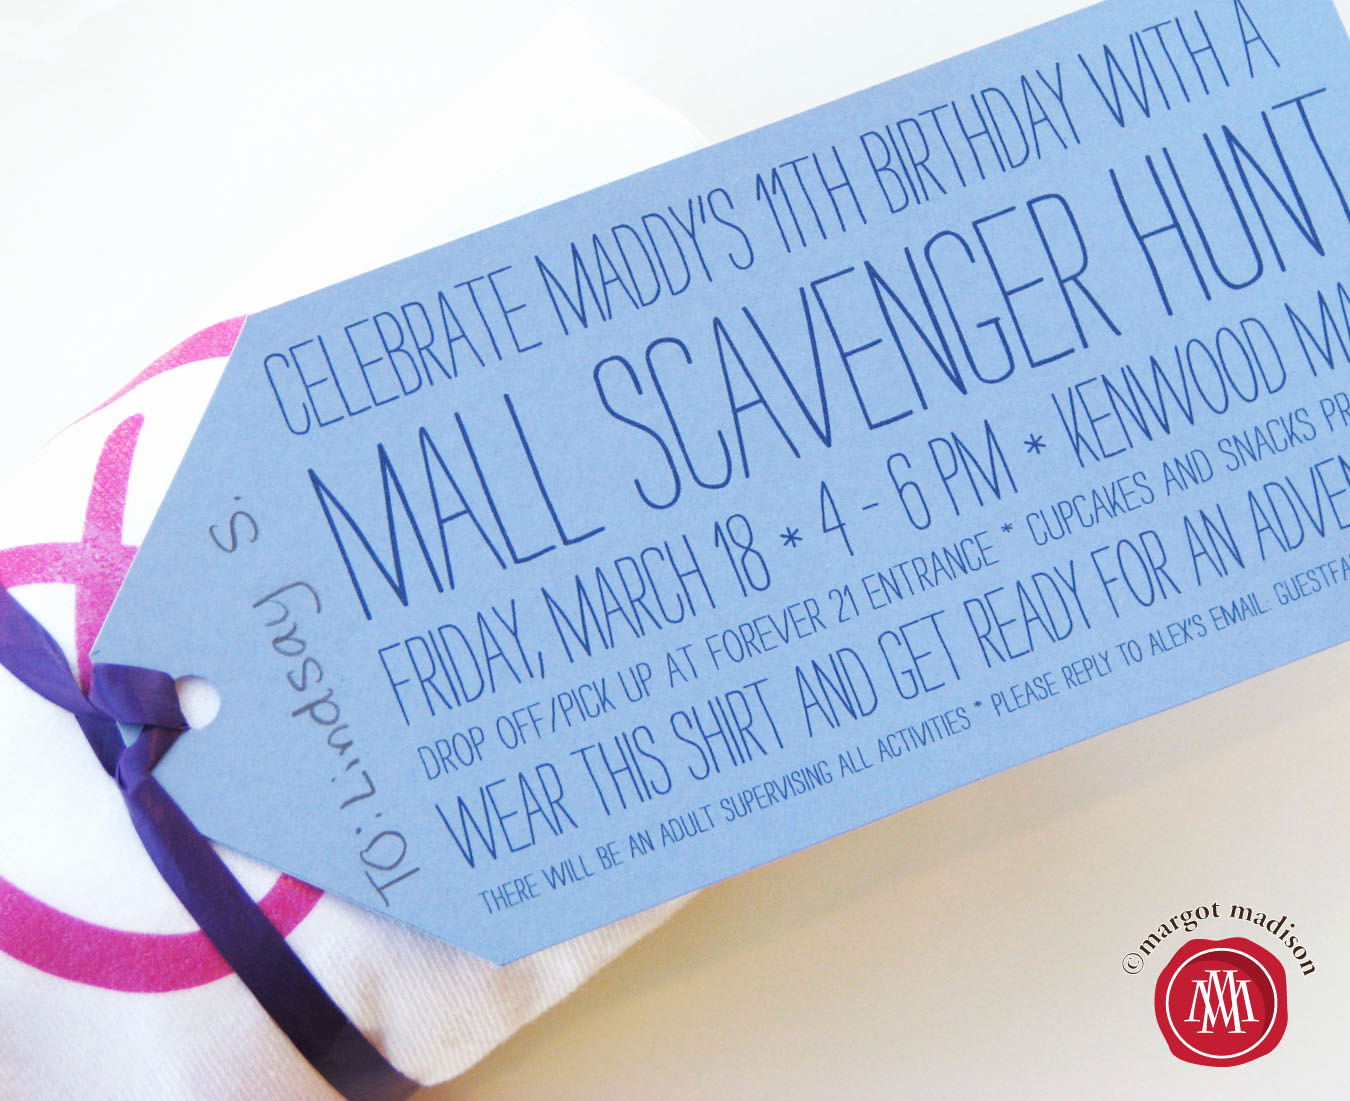 Mall Scavenger Hunt Invitation Elegant Margotmadison Mall Scavenger Hunt Party for Tweens